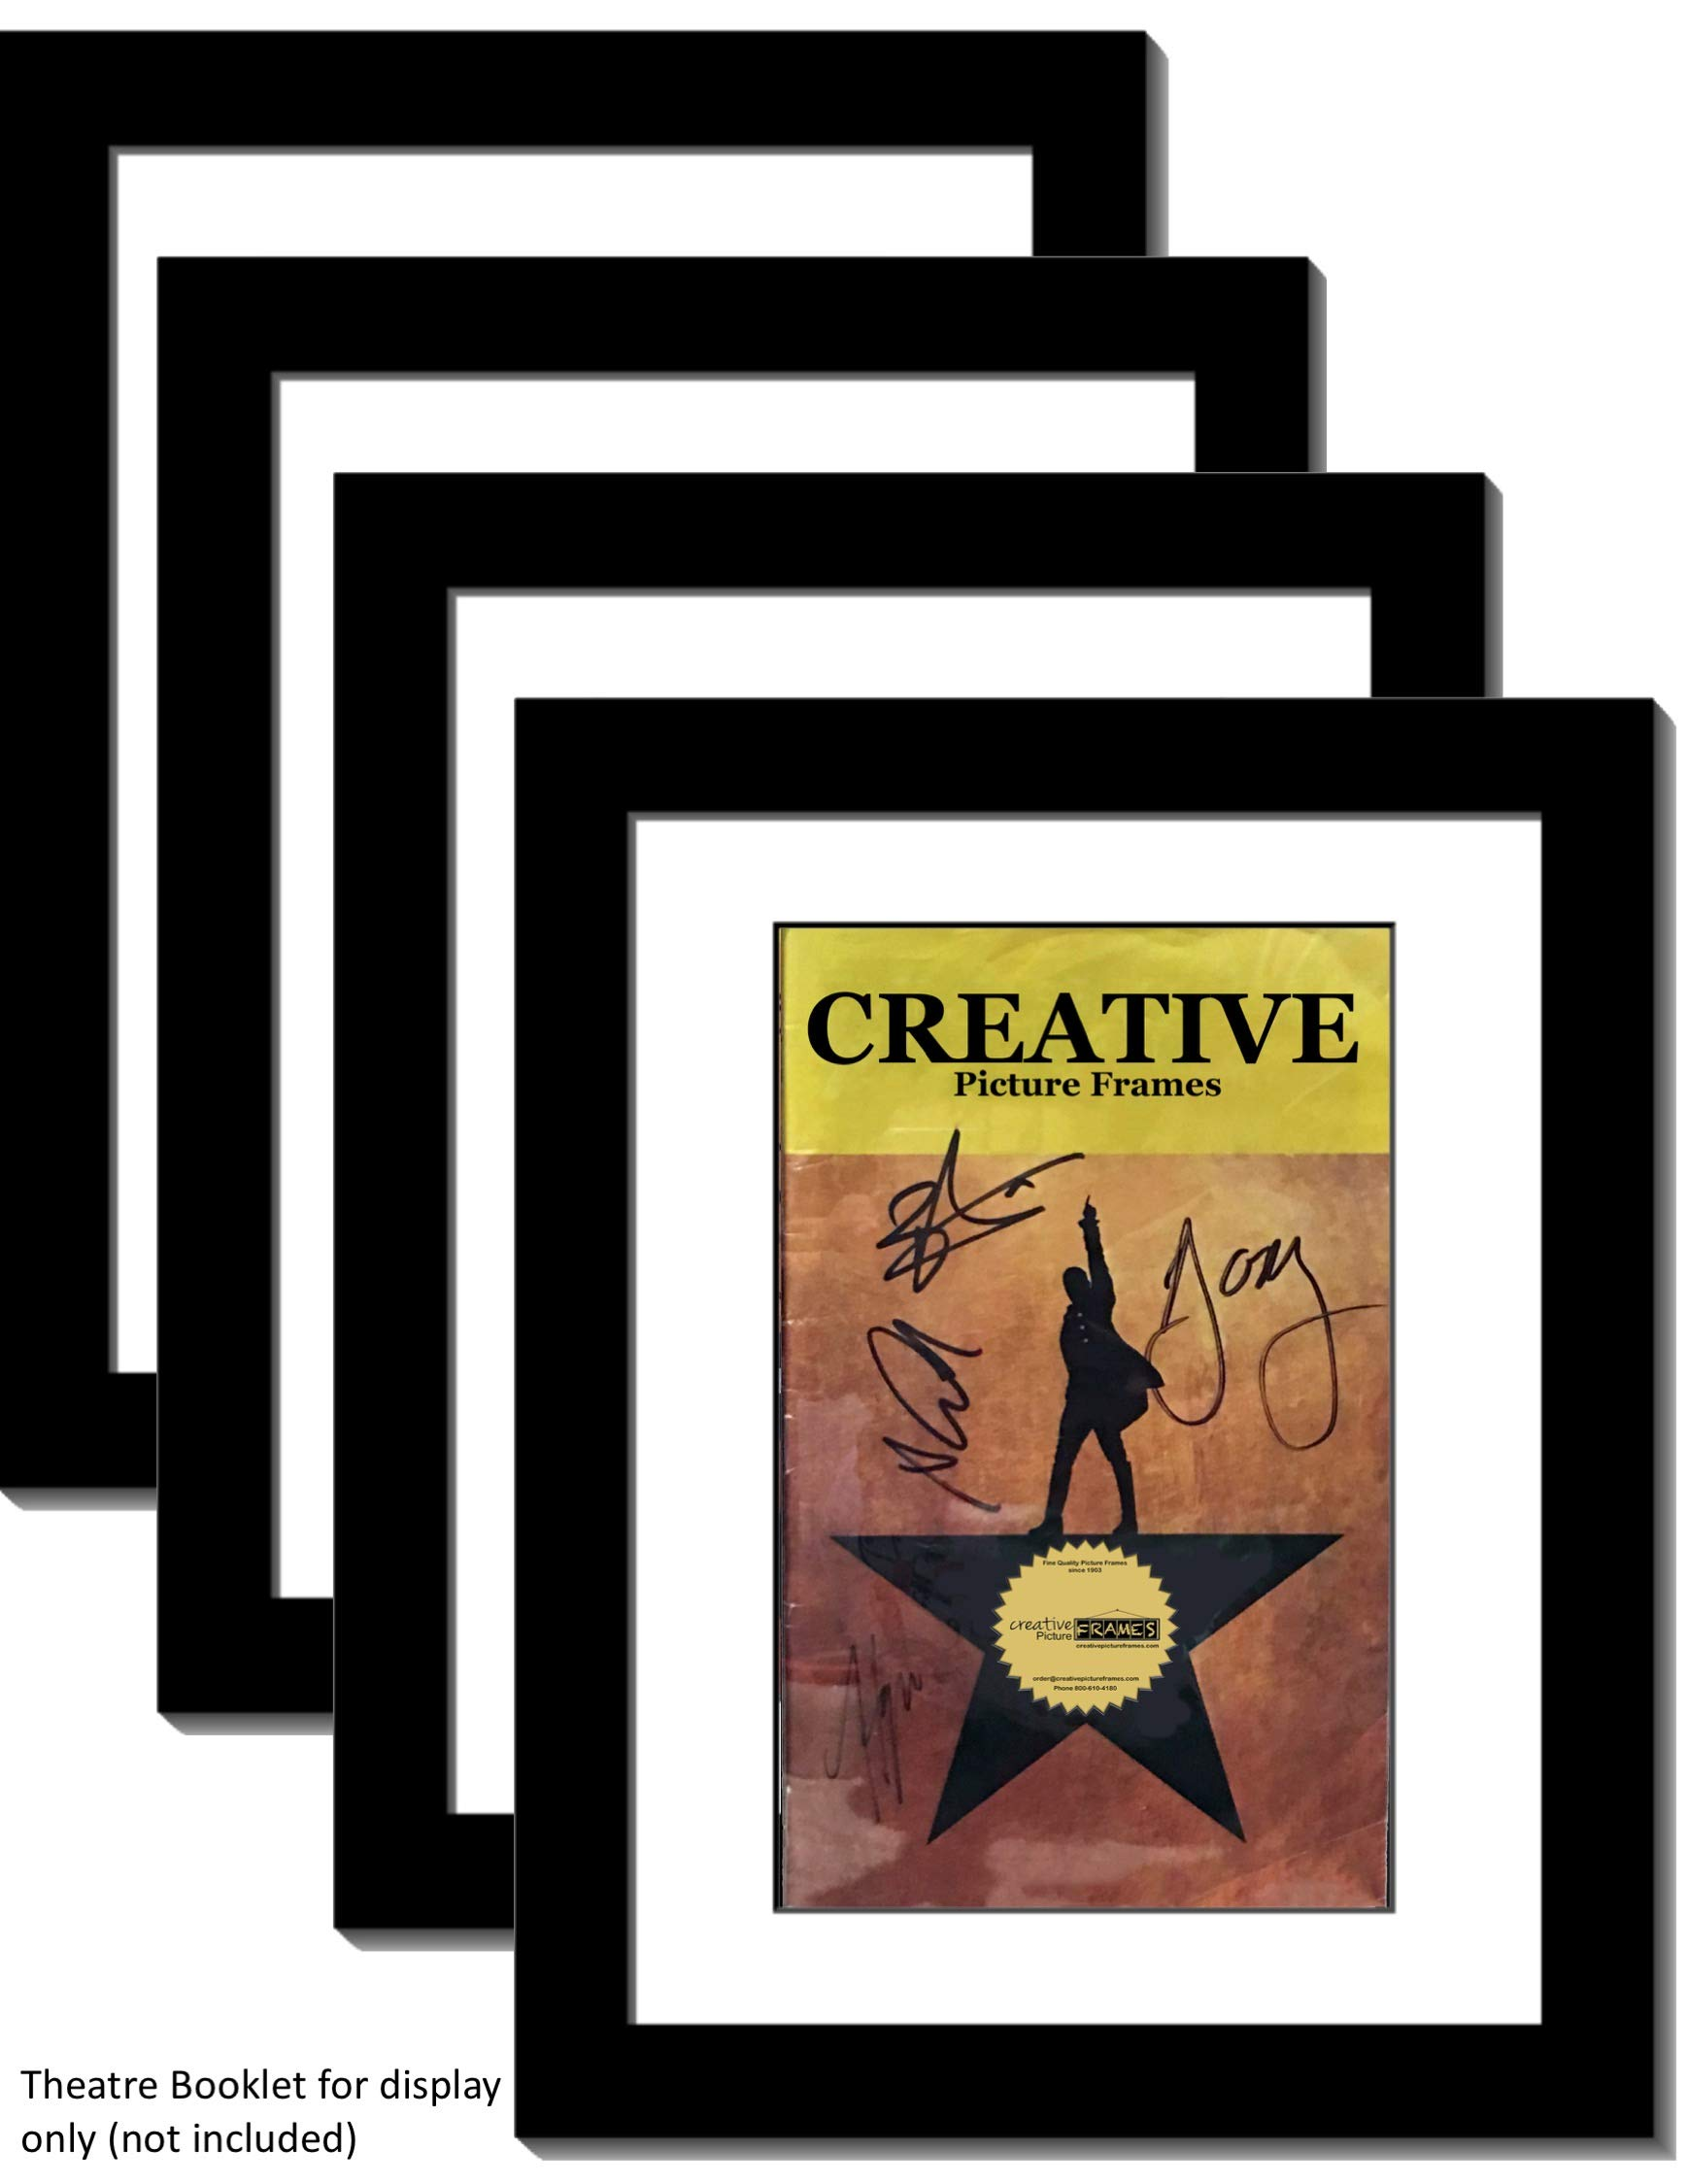 Creative Picture Frames [4pk8.5x11bk-w Black Theatre Frame with White Matting to Holds 5.5x8.5-inch Media with Installed Hanger and Stand (Theatre Bill Not Included Pack of 4)